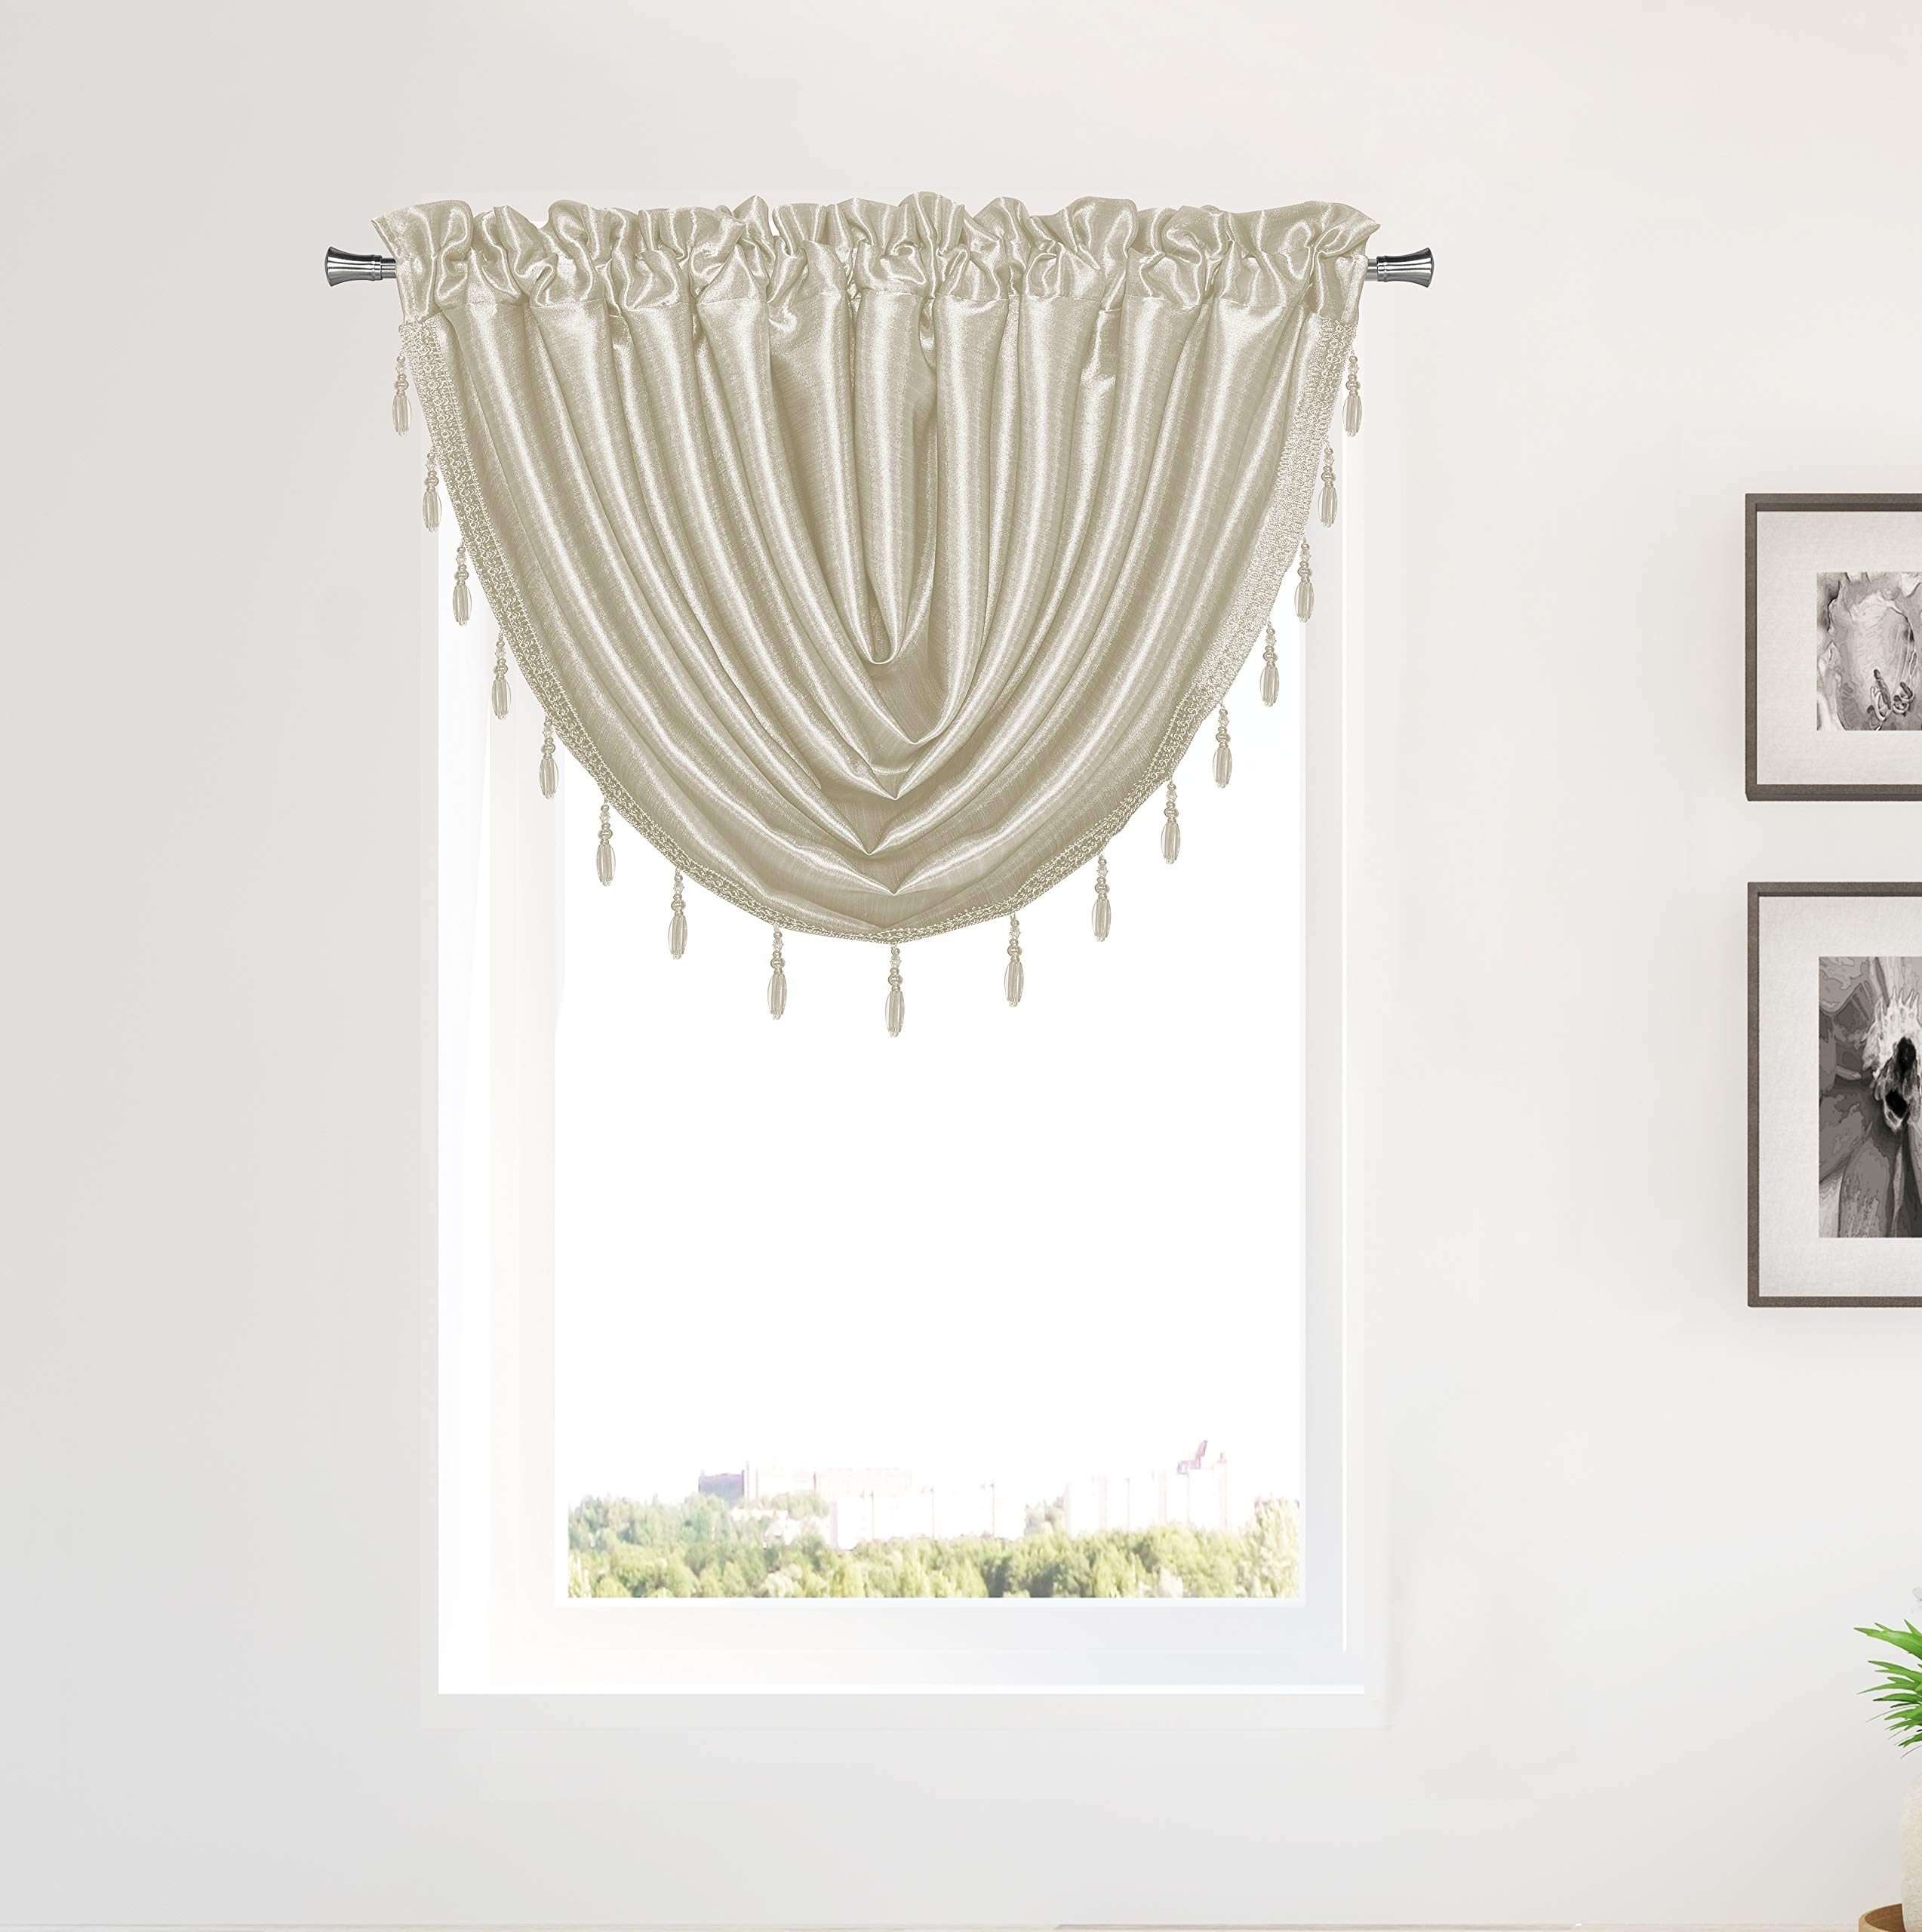 waterfall valance pattern waterfall valance pattern patterns gallery 4332